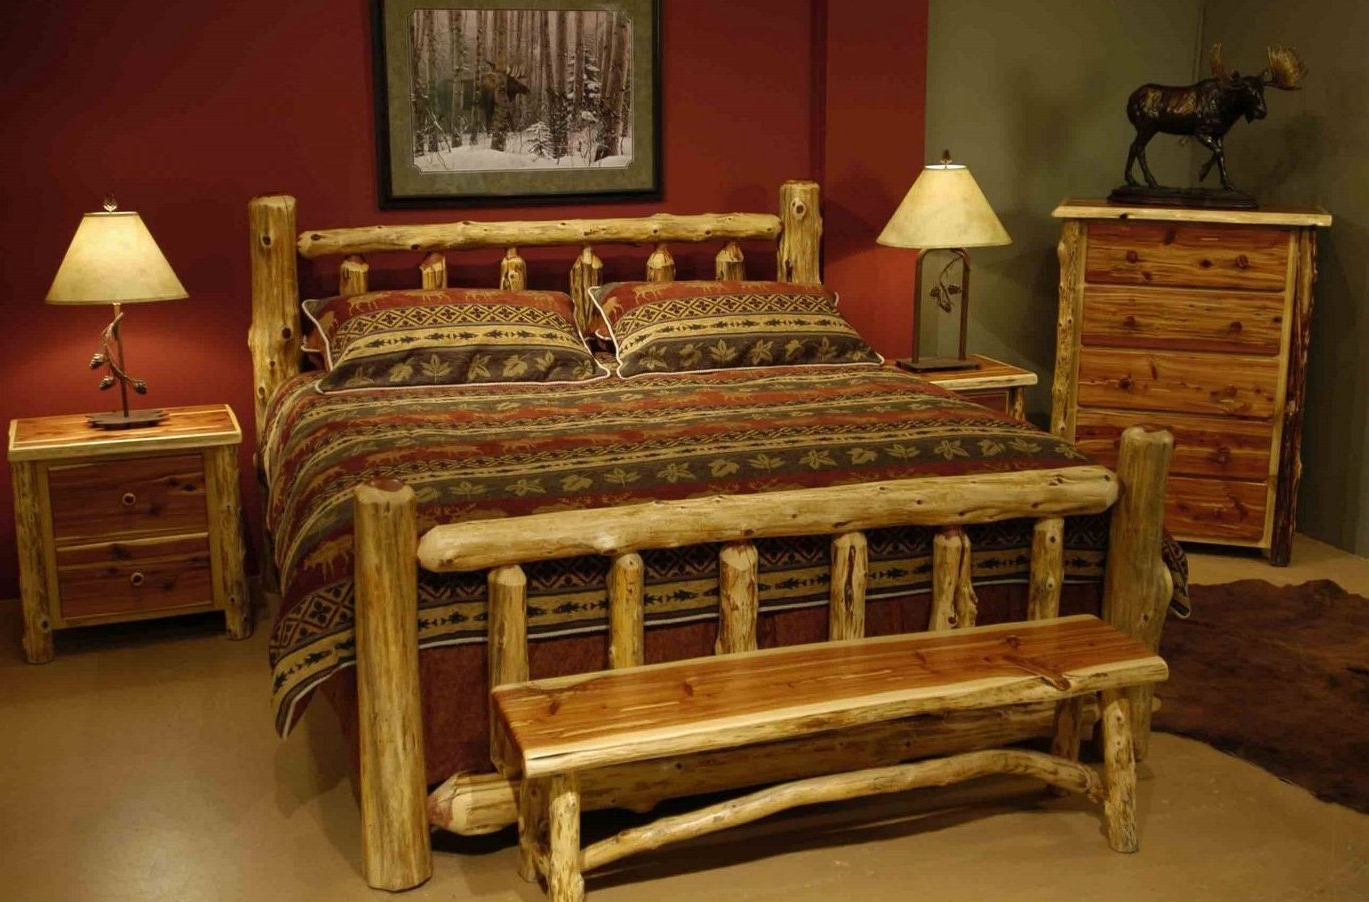 Quirky Bedroom Furniture Bedroom Furniture Design Feat Animal Rustic Print Bedding Idea